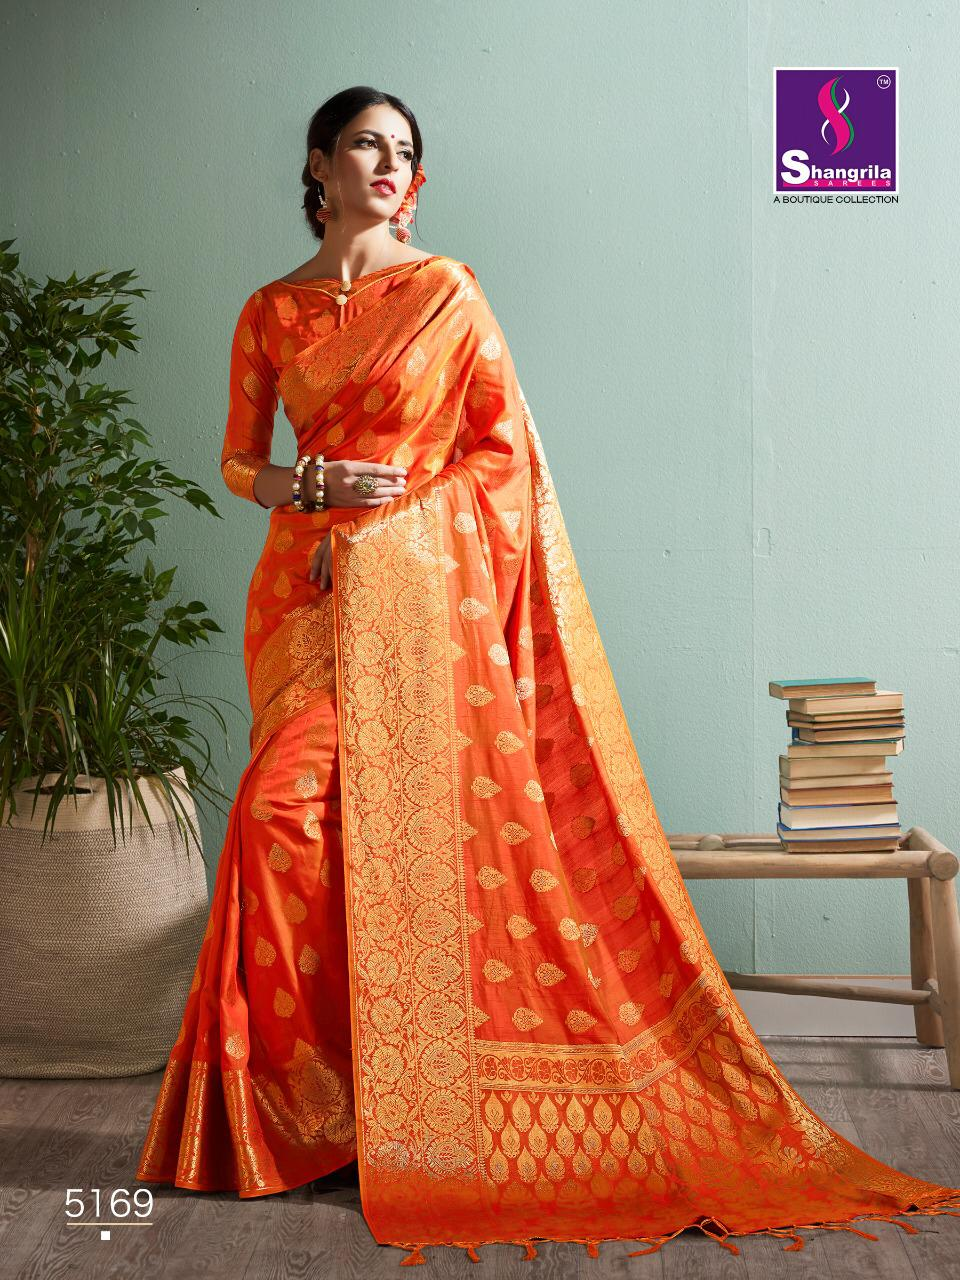 Shangrila Vasansi Silk 2 collection 2